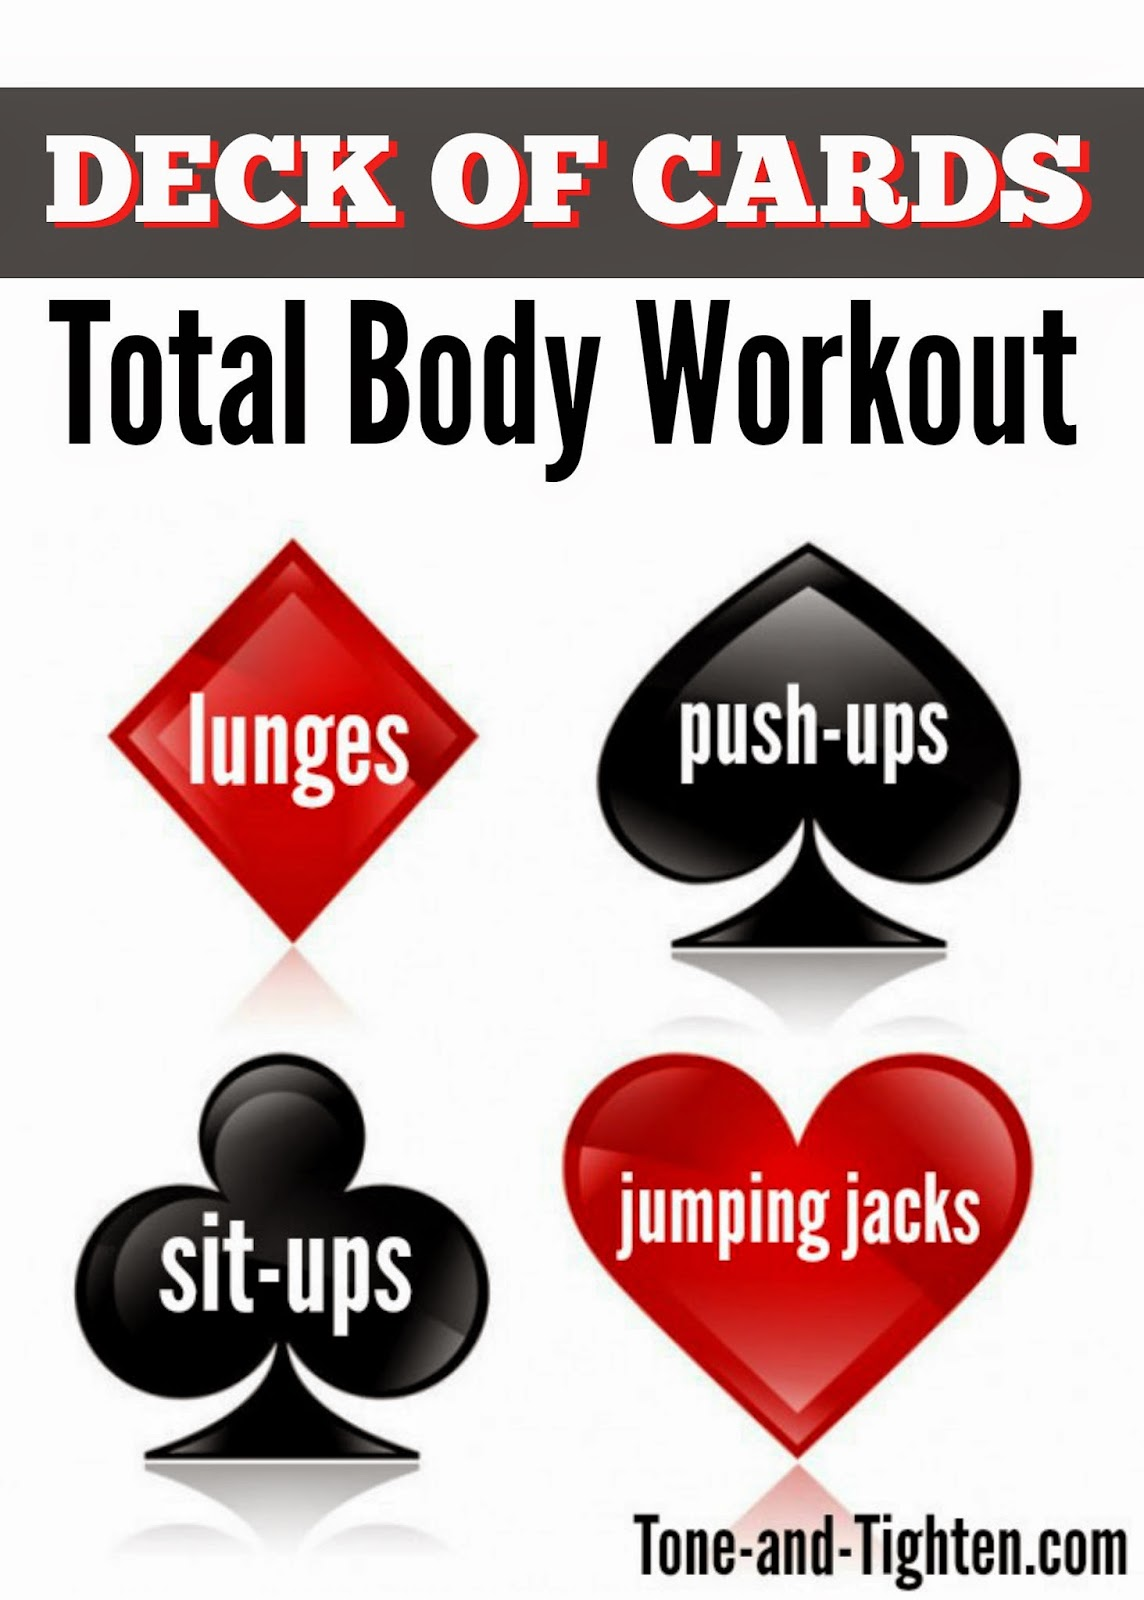 Deck Of Cards At Home Total Body Workout | Tone And Tighten